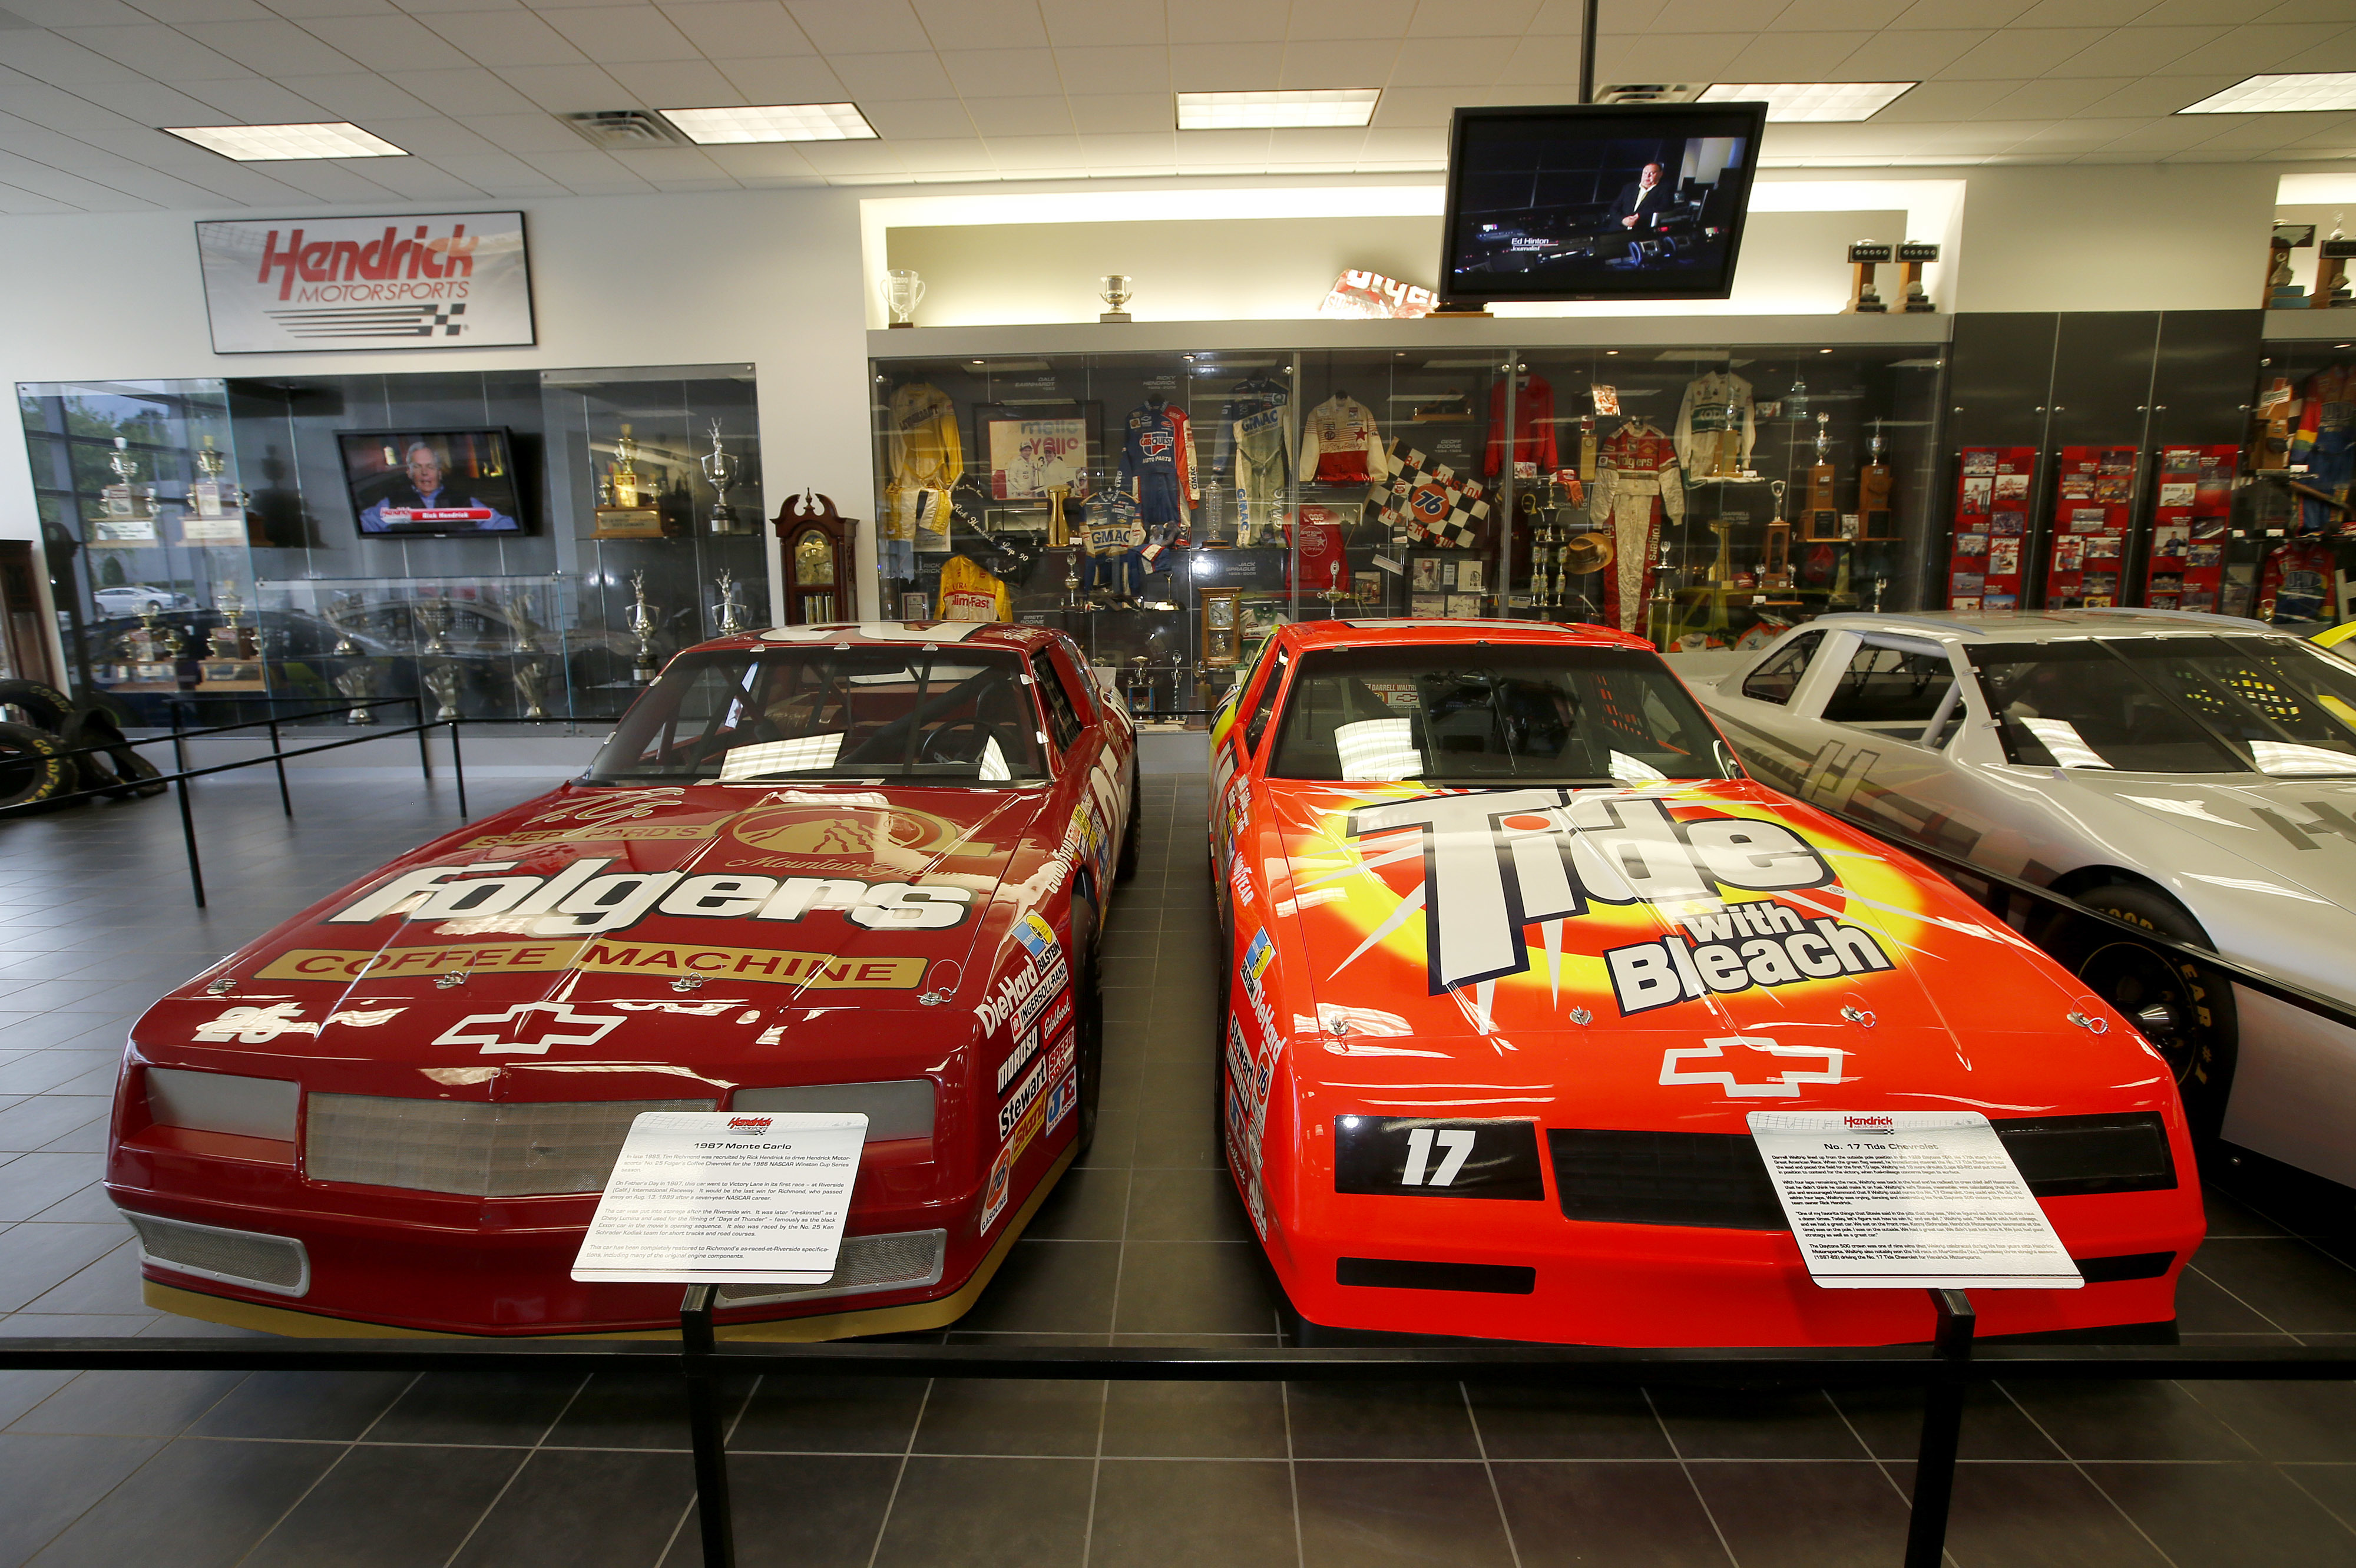 Team Charlotte Motorsports >> Fast Five: Fun finds in Hendrick Motorsports museum | Hendrick Motorsports